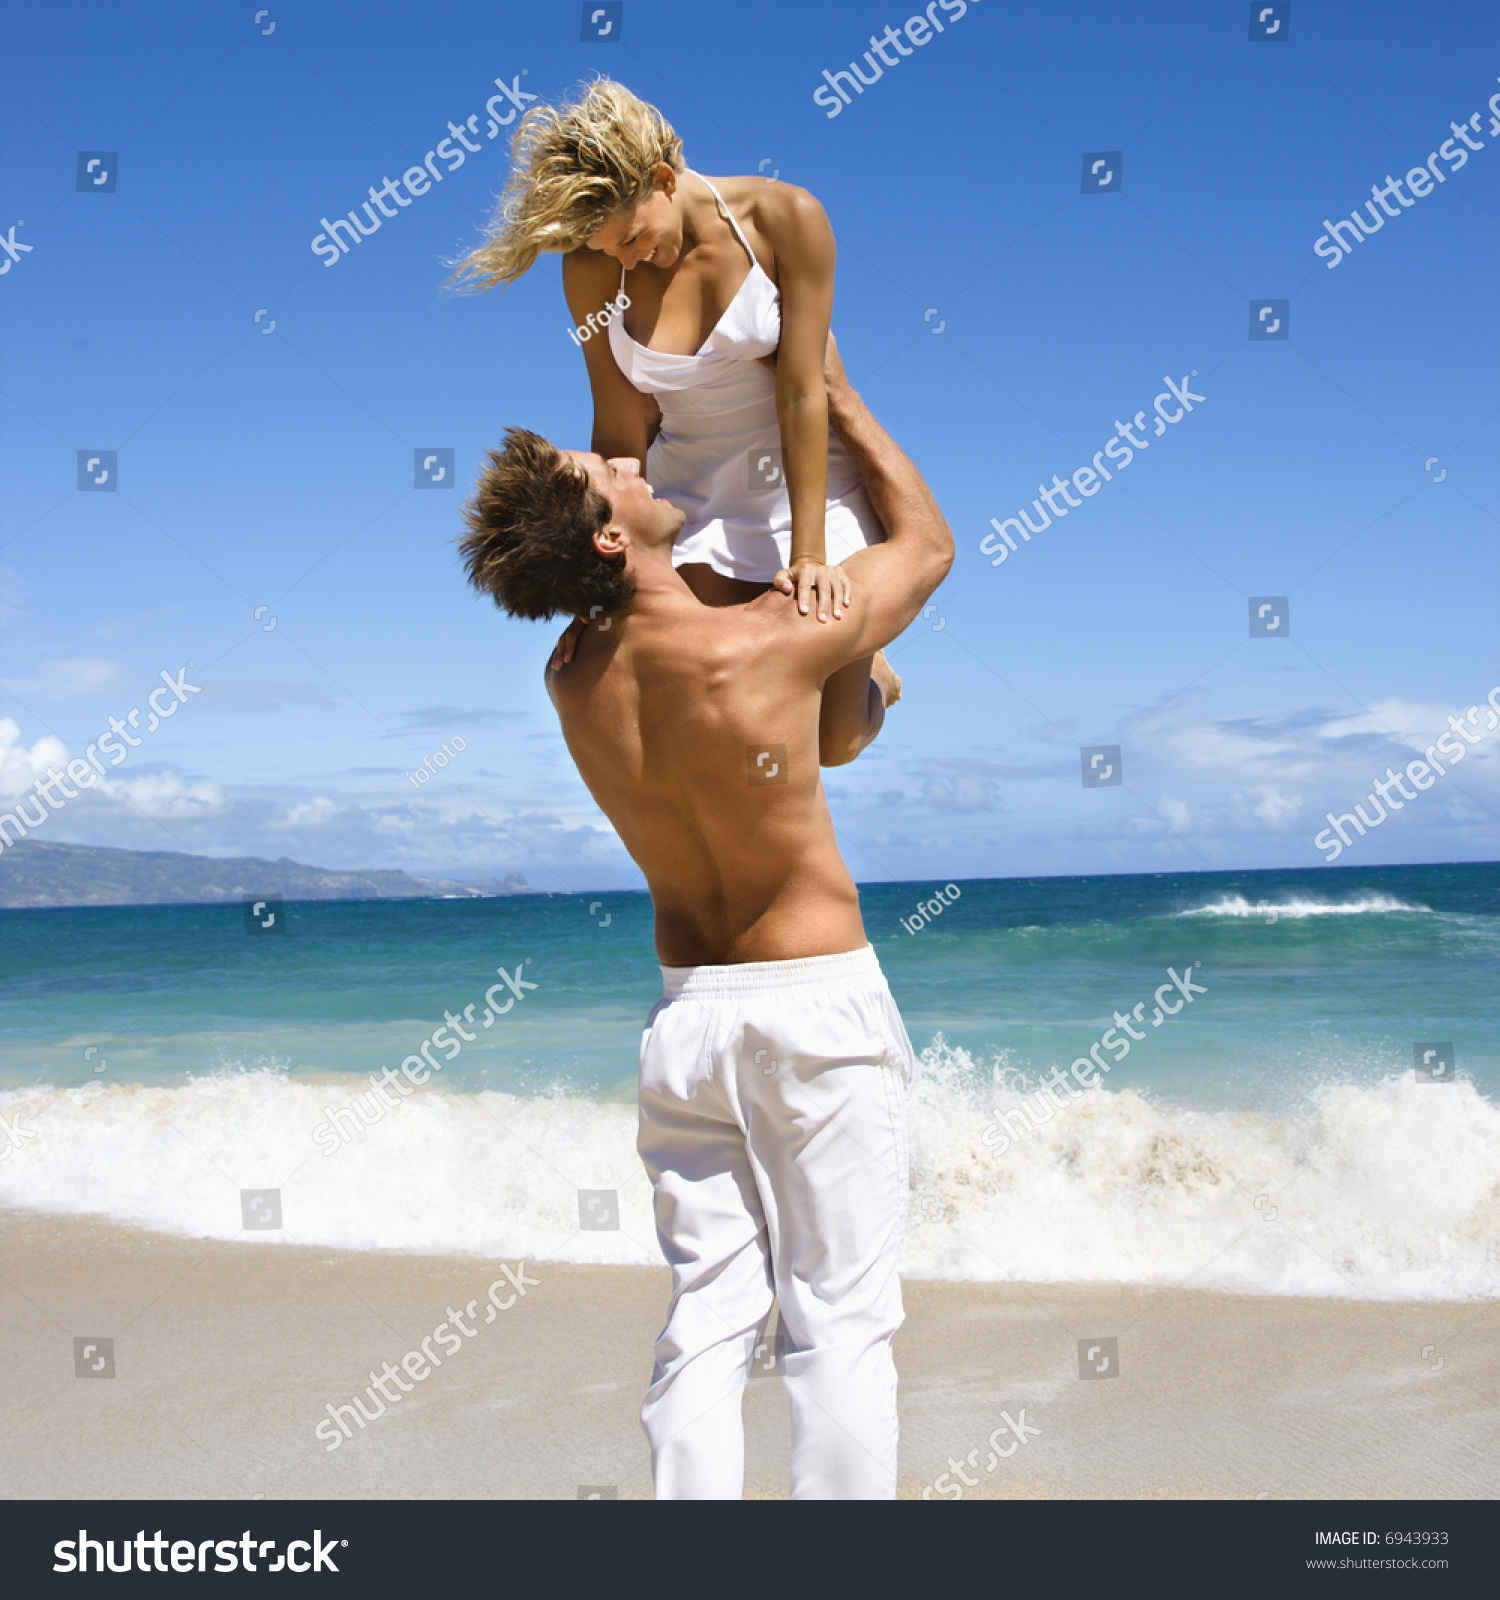 Man holding woman up in air as they look into eachother s eyes on maui